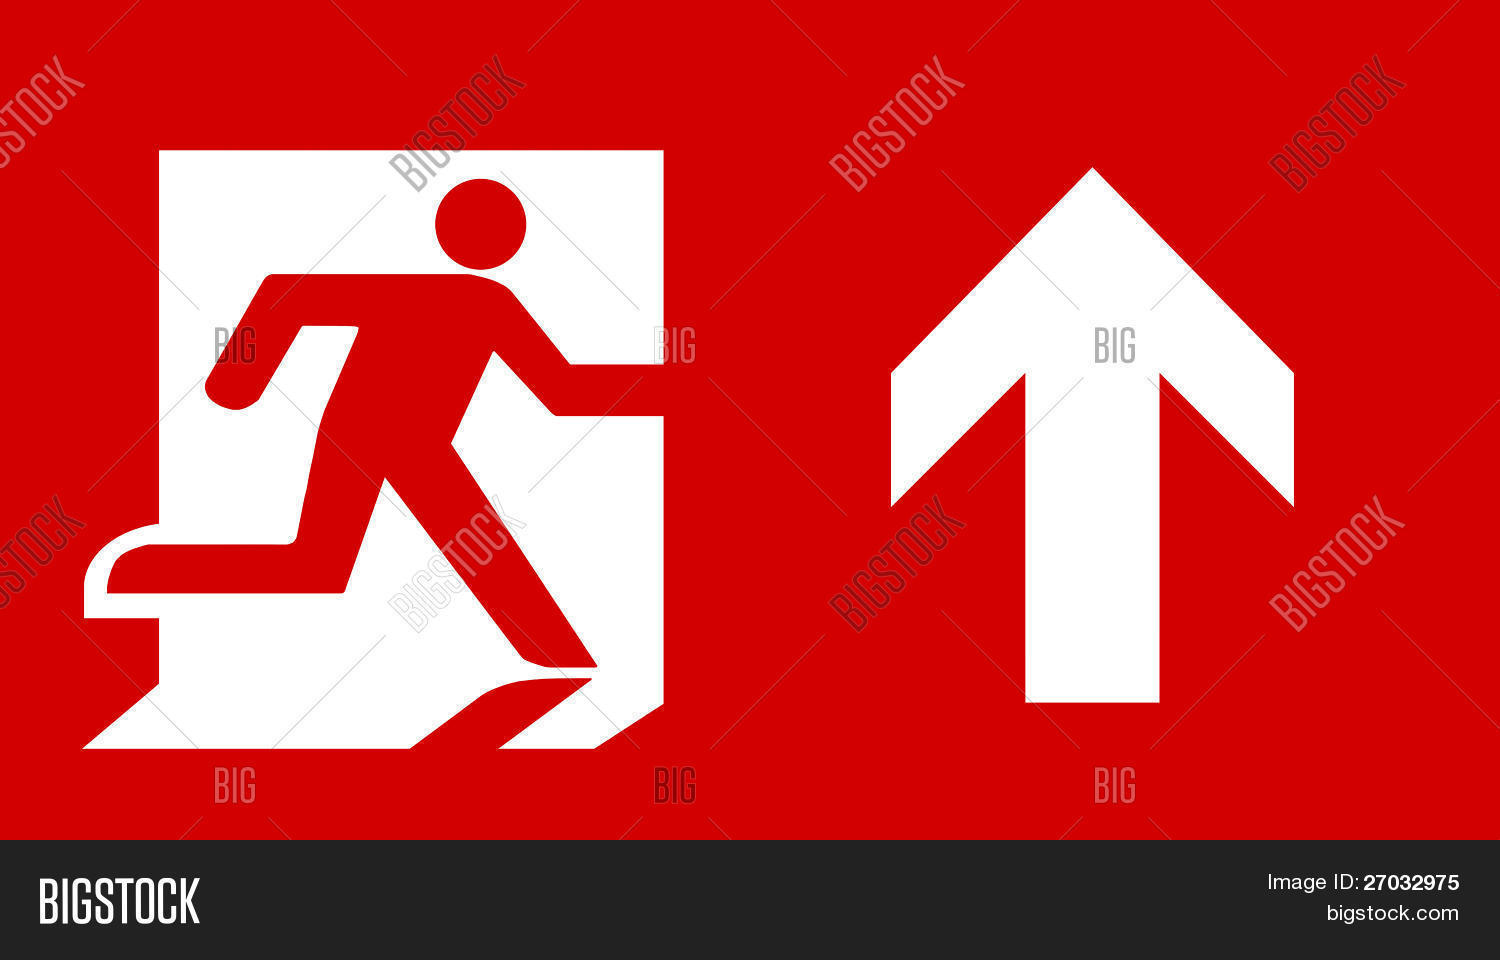 Symbol Fire Exit Sign Image Photo Free Trial Bigstock